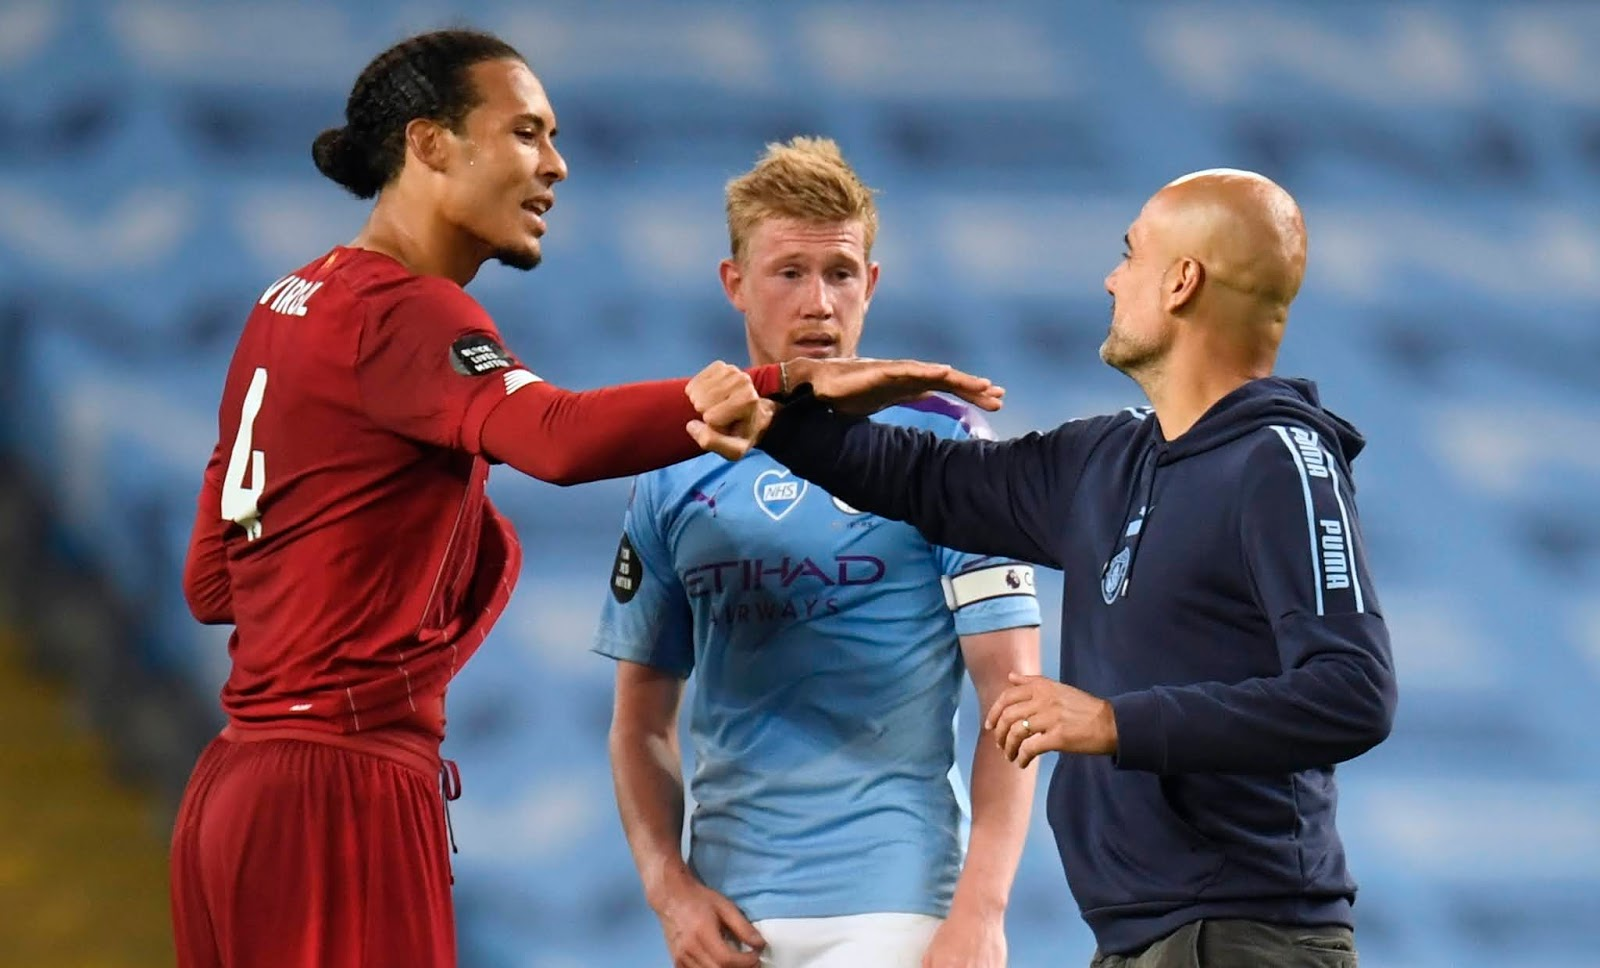 Virgil Van Dijk, Kevin De Bruyne and Pep Guardiola